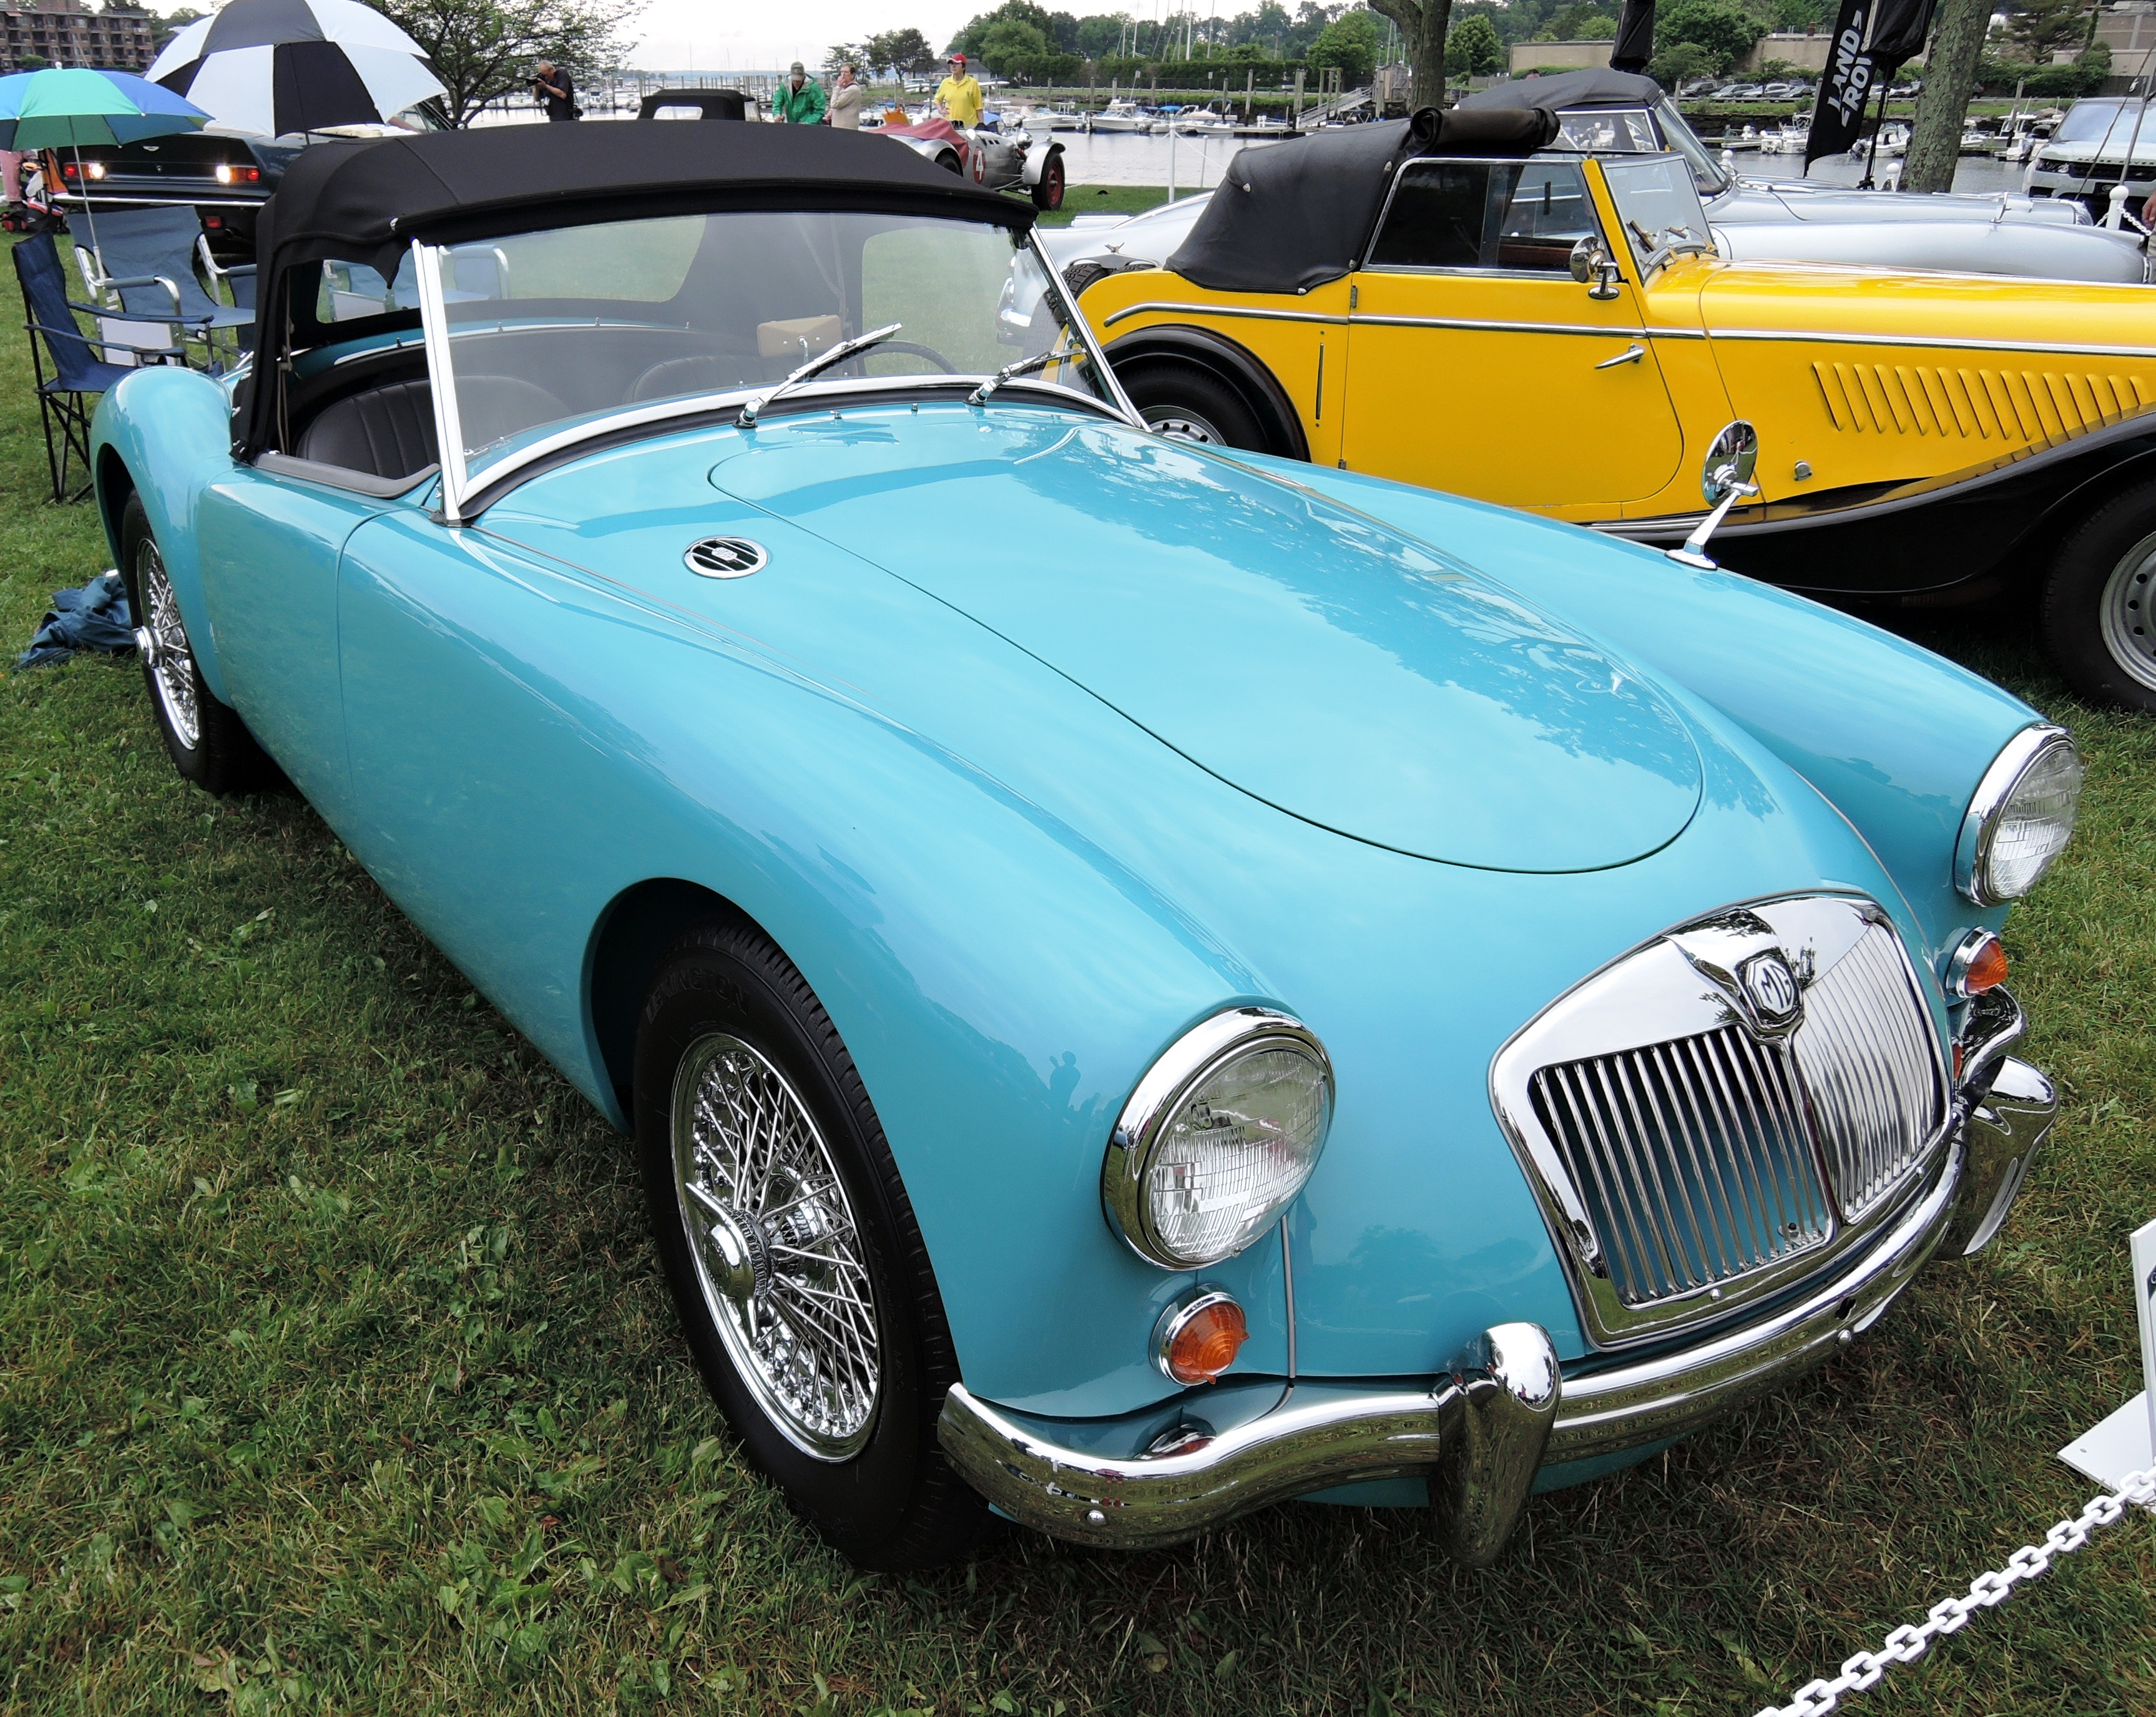 blue 1959 MG A - Greenwich concours d'elegance